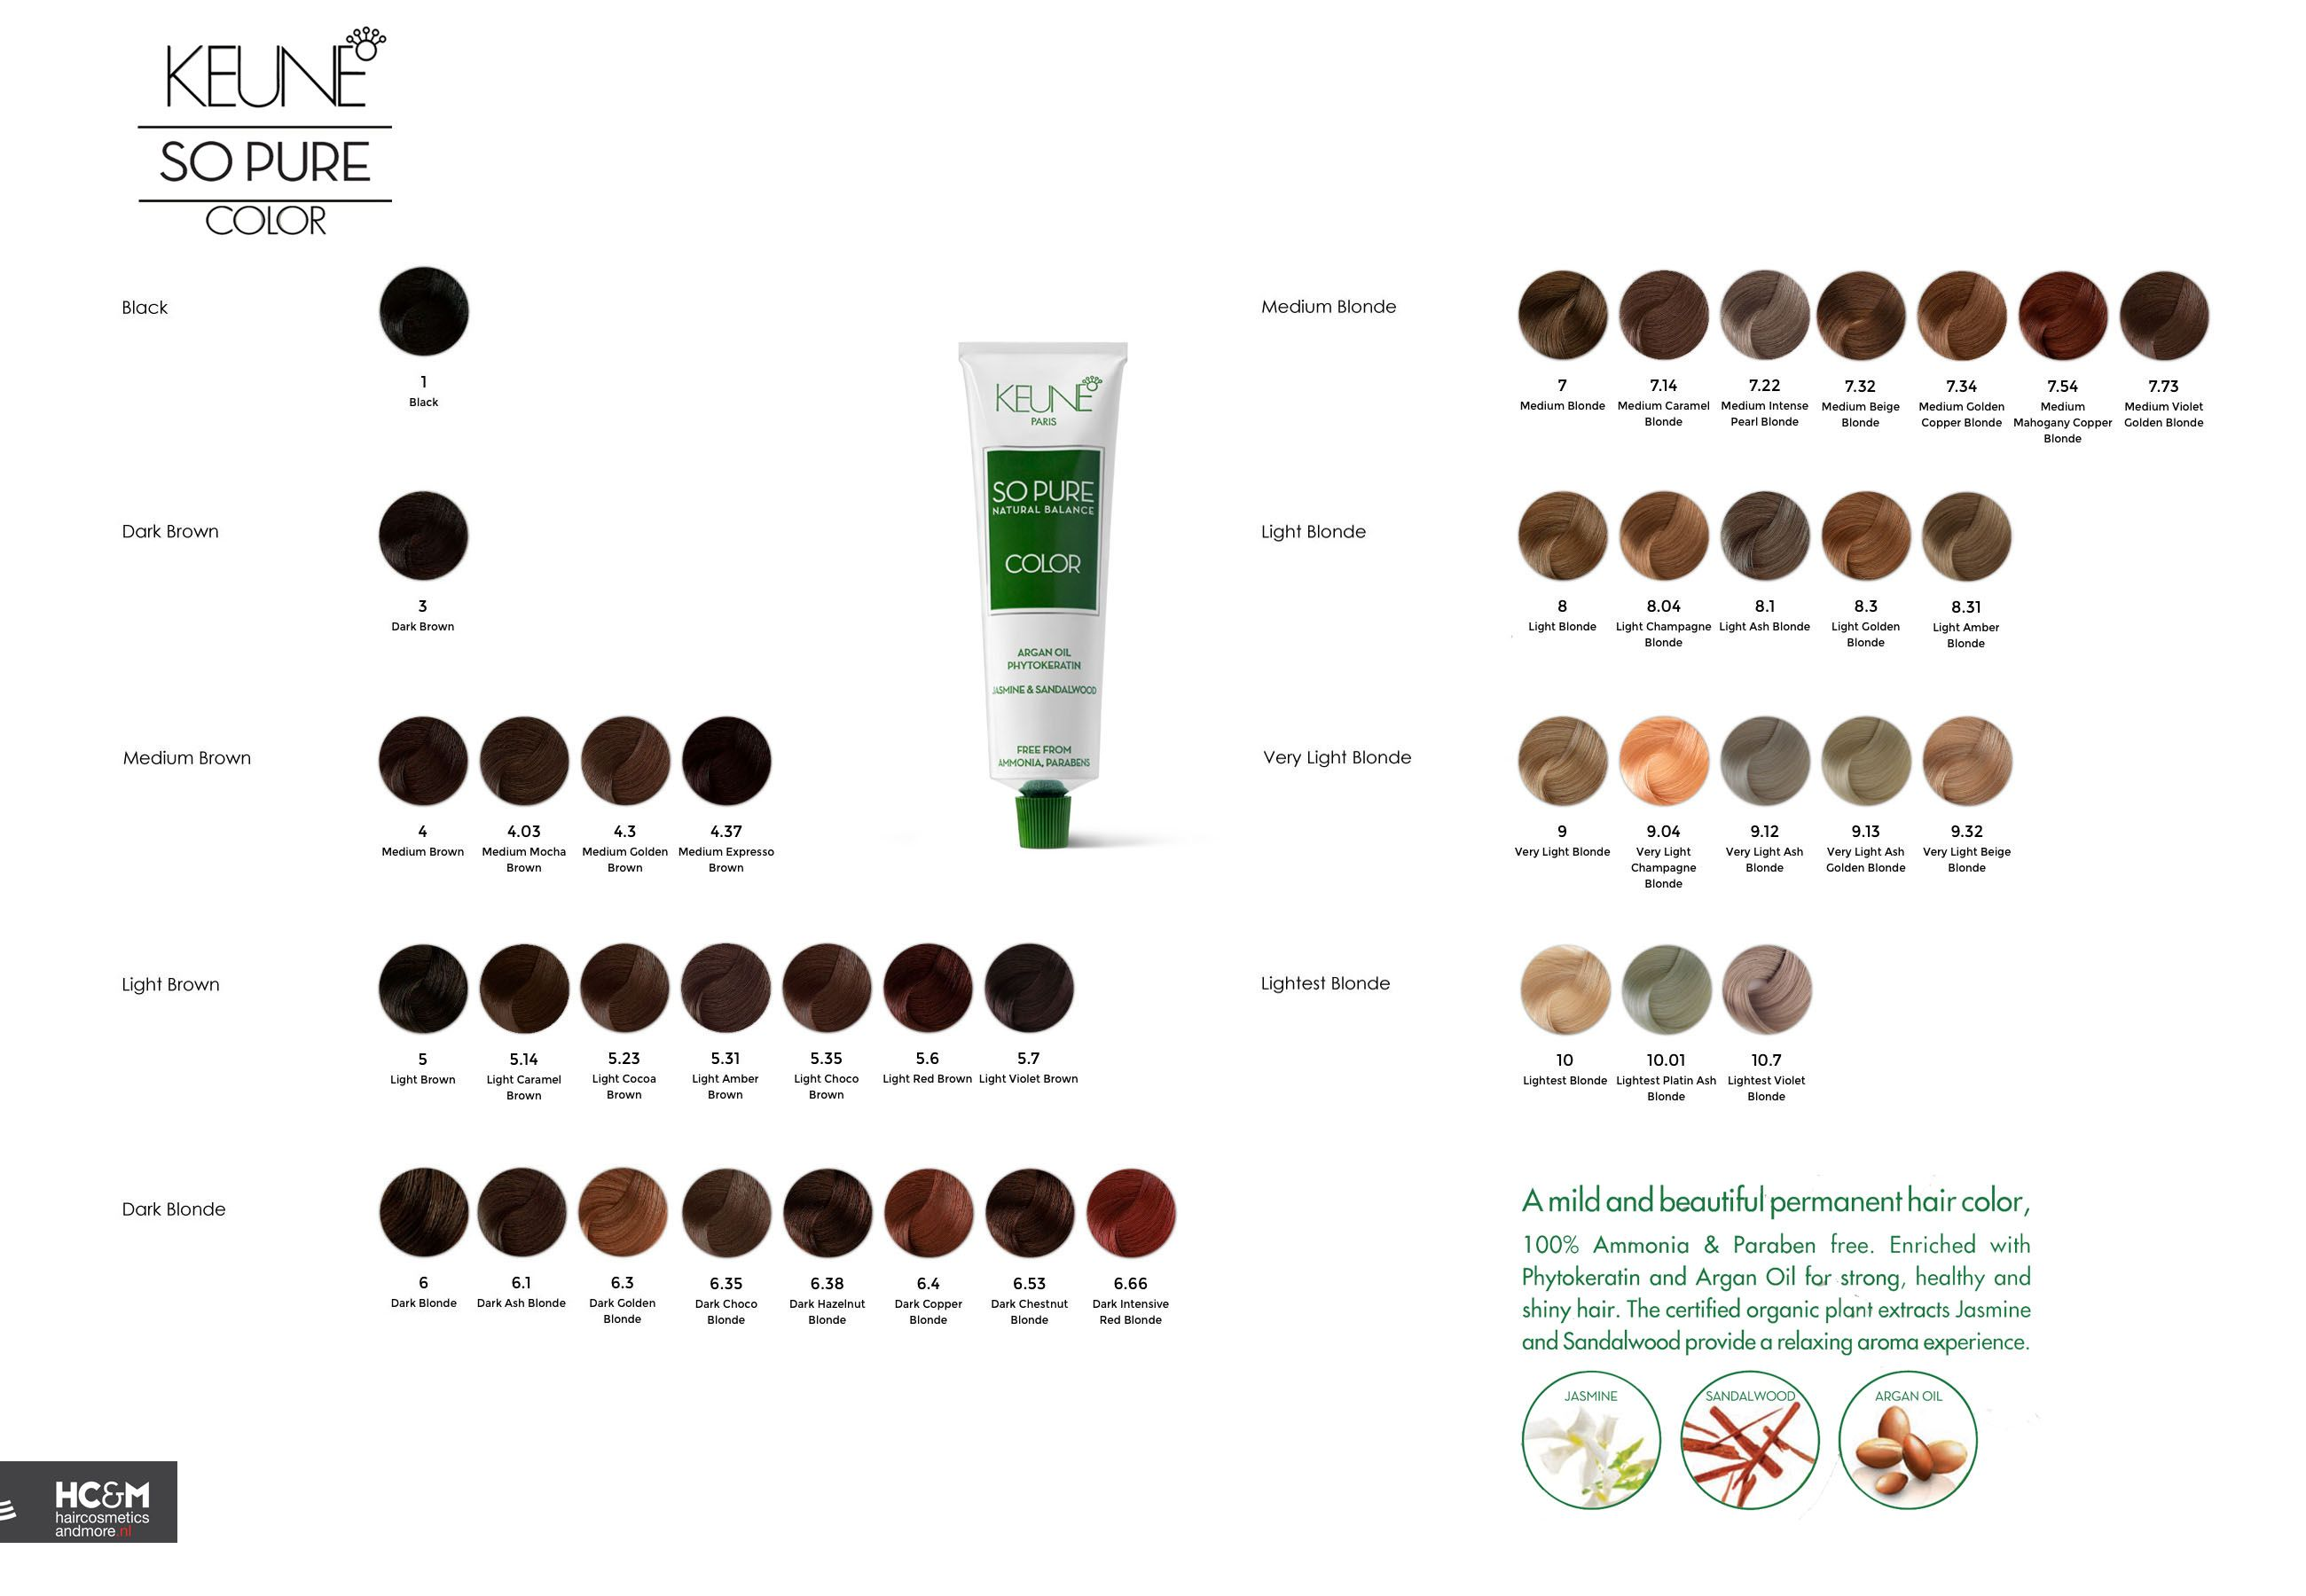 Keune So Pure Color Shade Palette 2015 Hair Color Chart Pure Products Pure Color